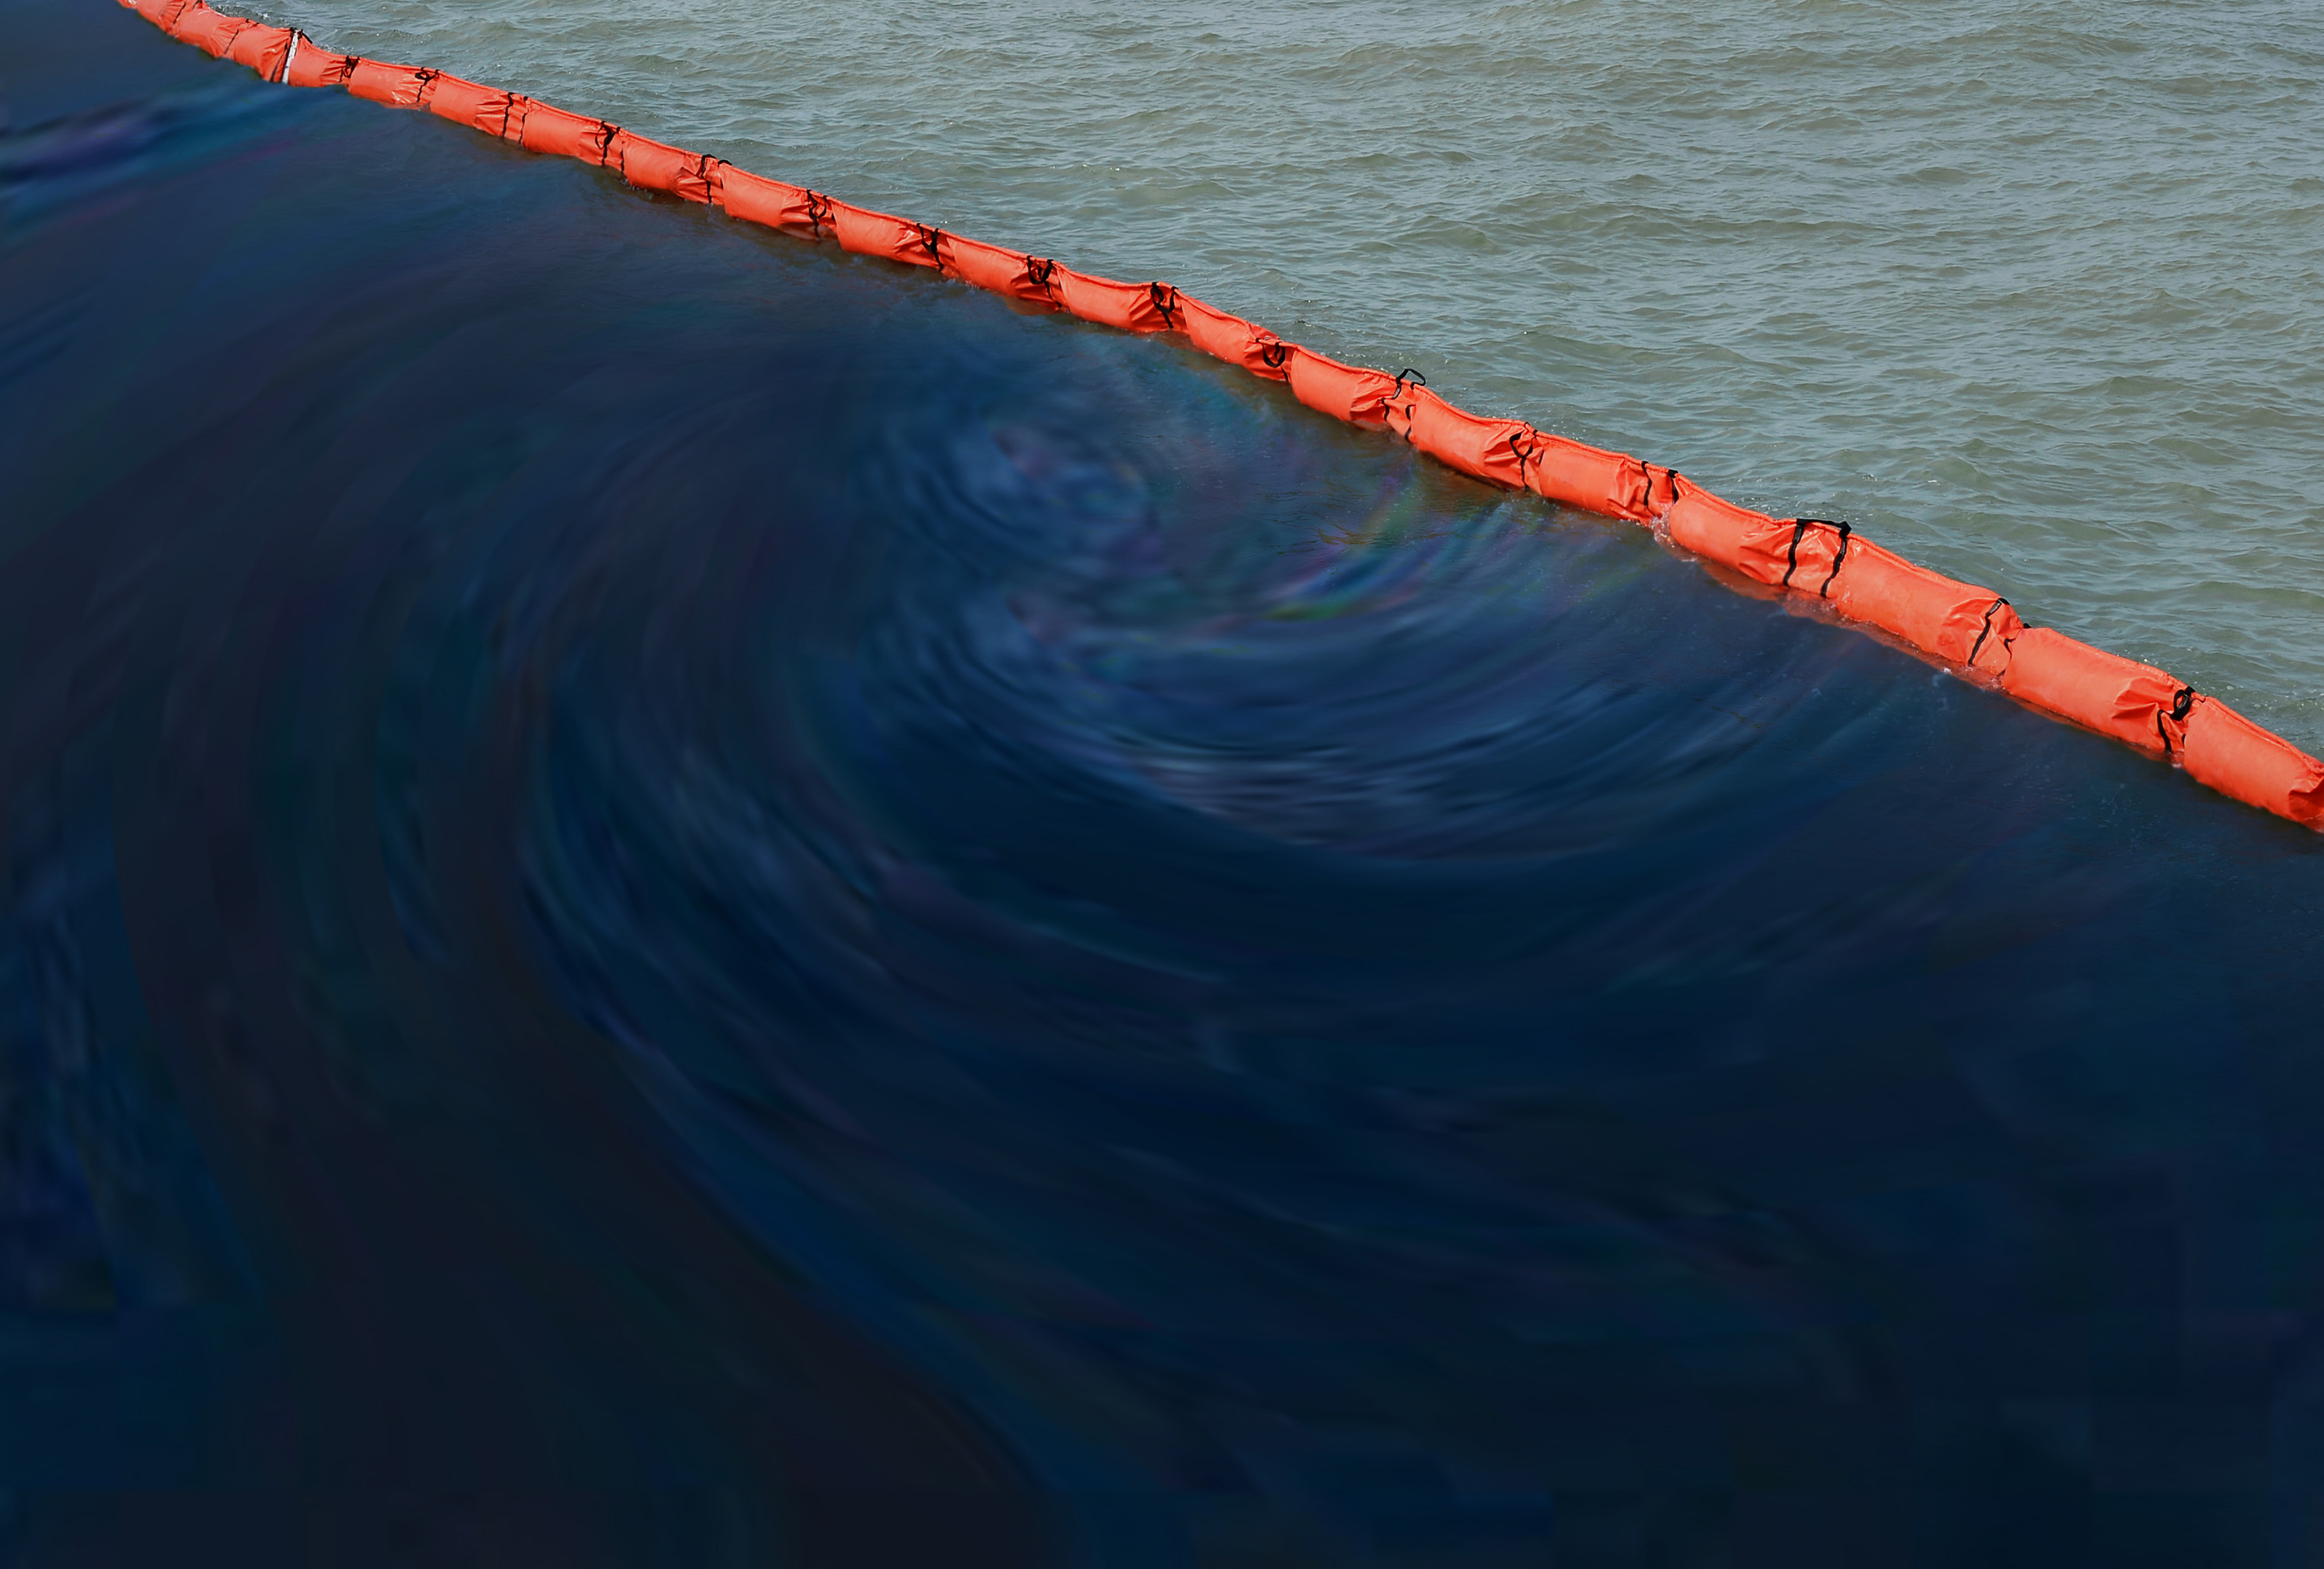 BASF's Tinuvin range of plastic additives help to increase the lifespan of oil spill barriers under intense sunlight (Source: BASF)